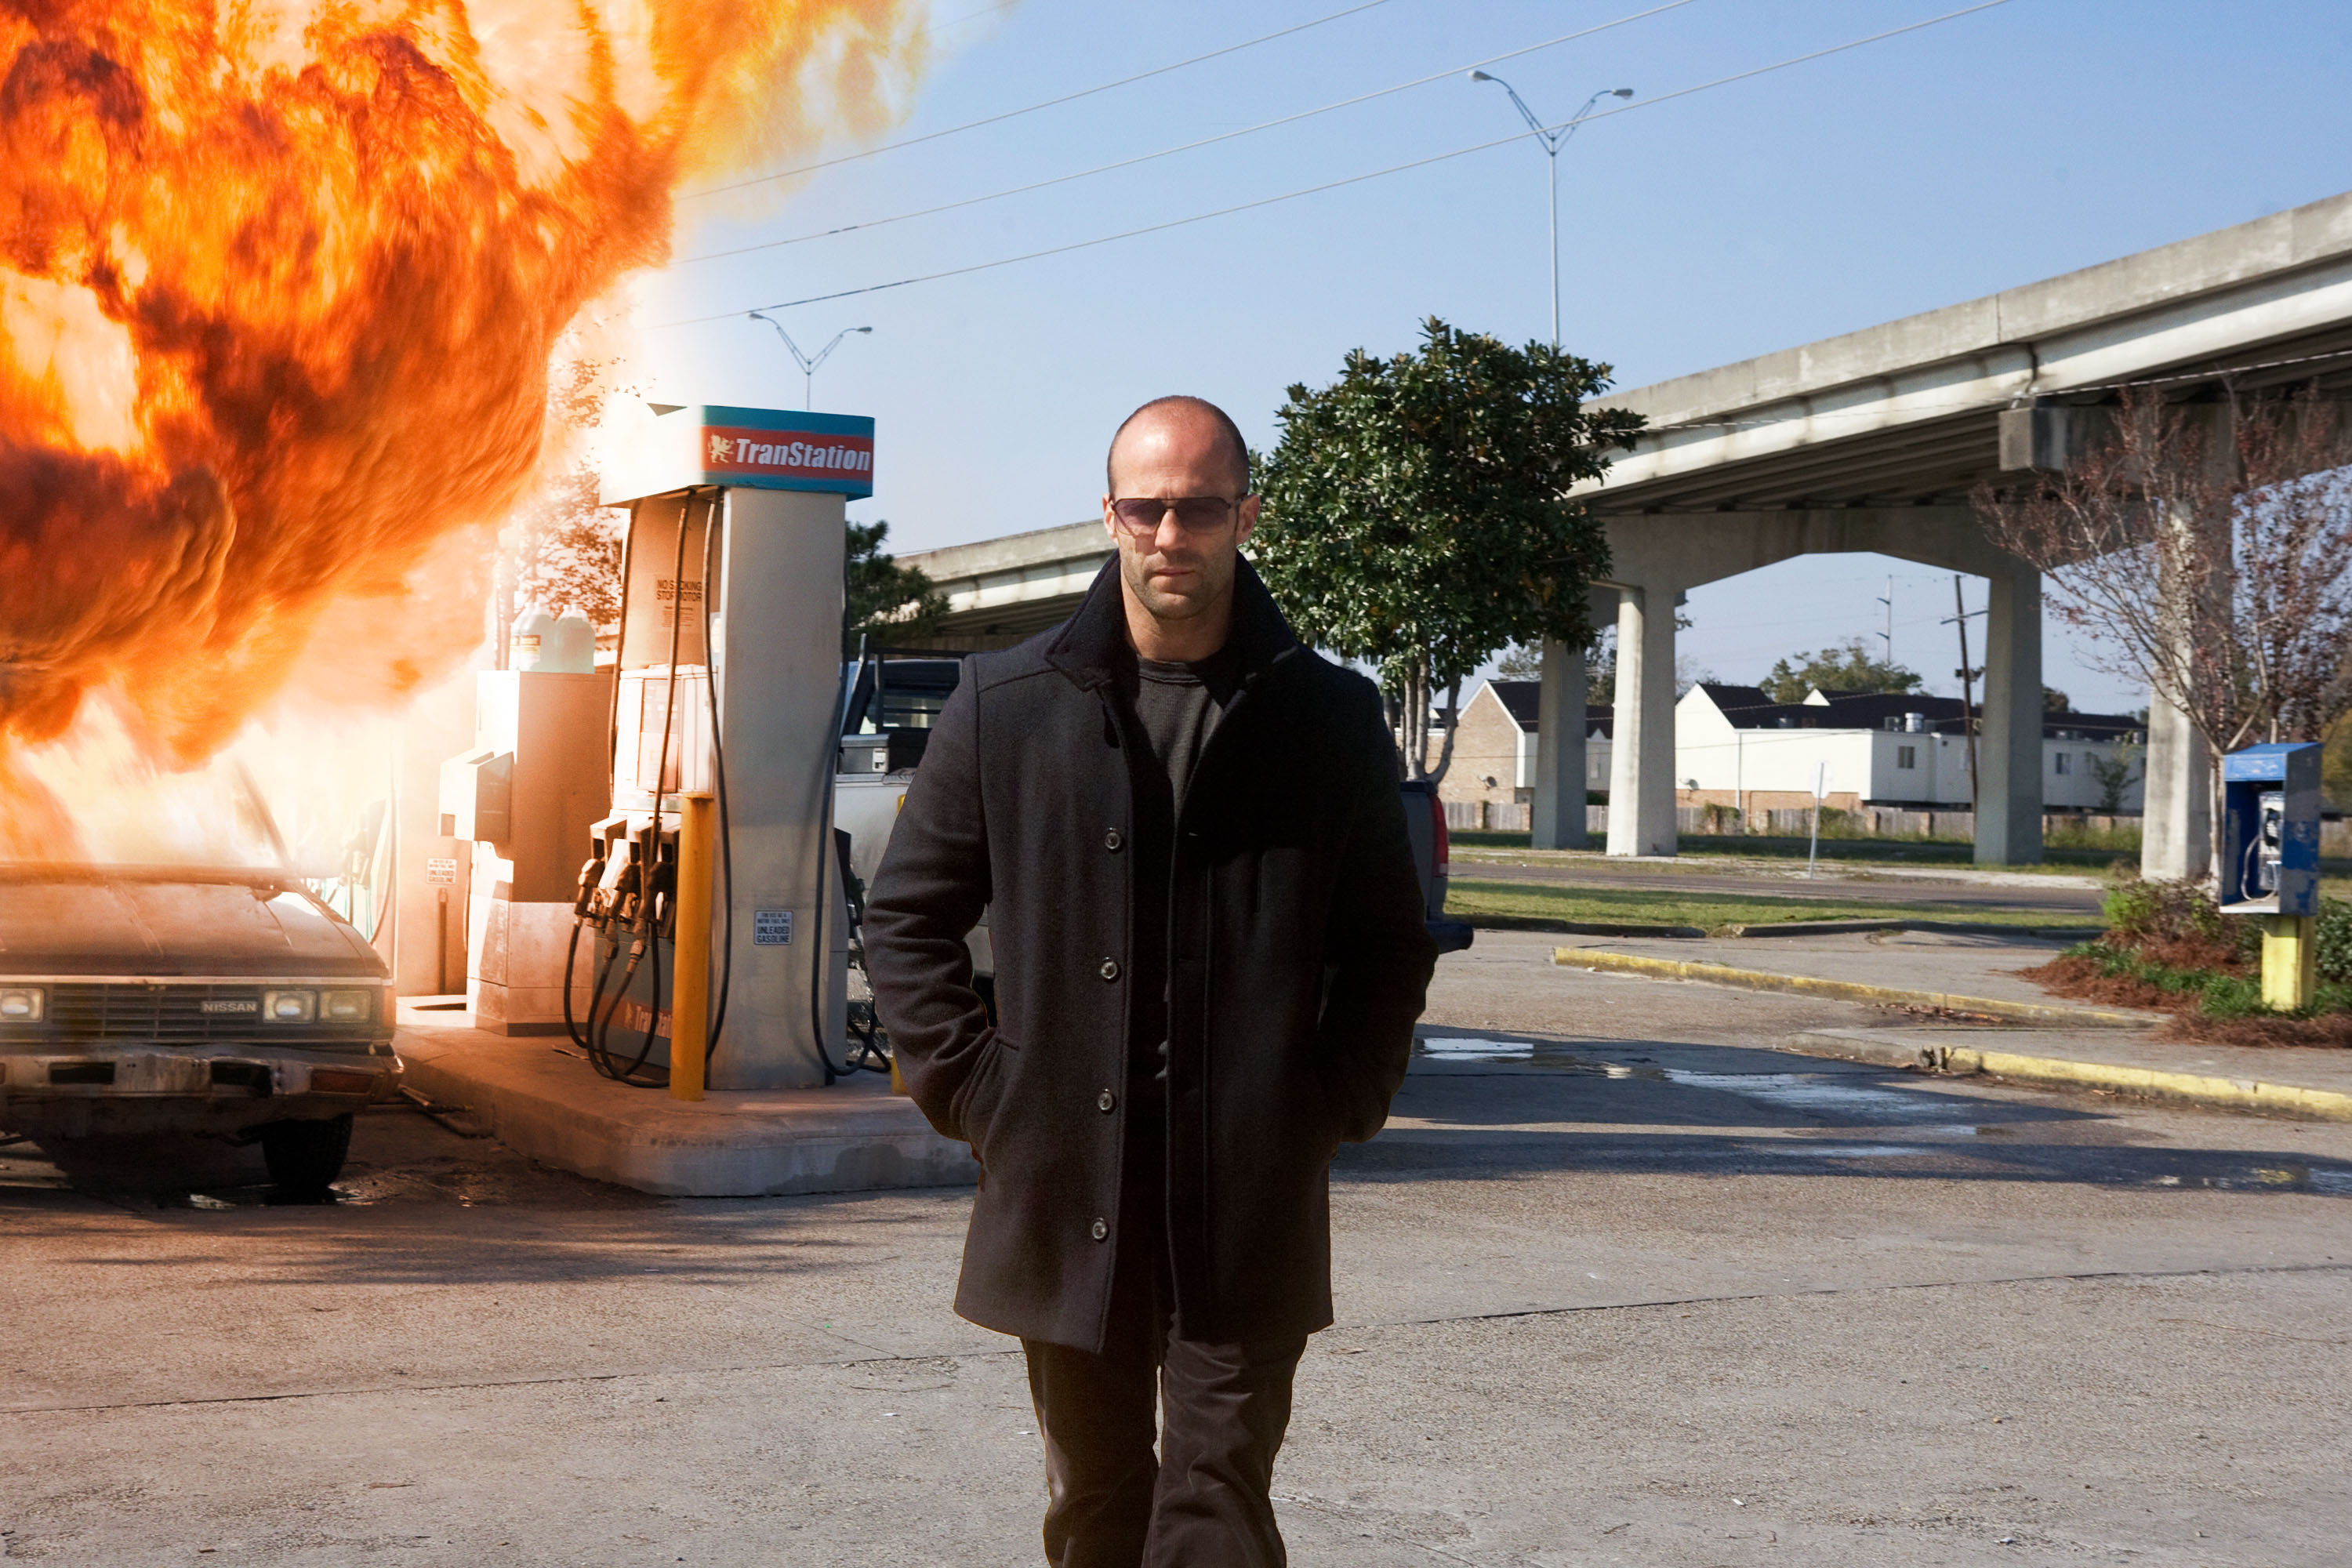 jason-statham-the-mechanic-movie-image.jpg